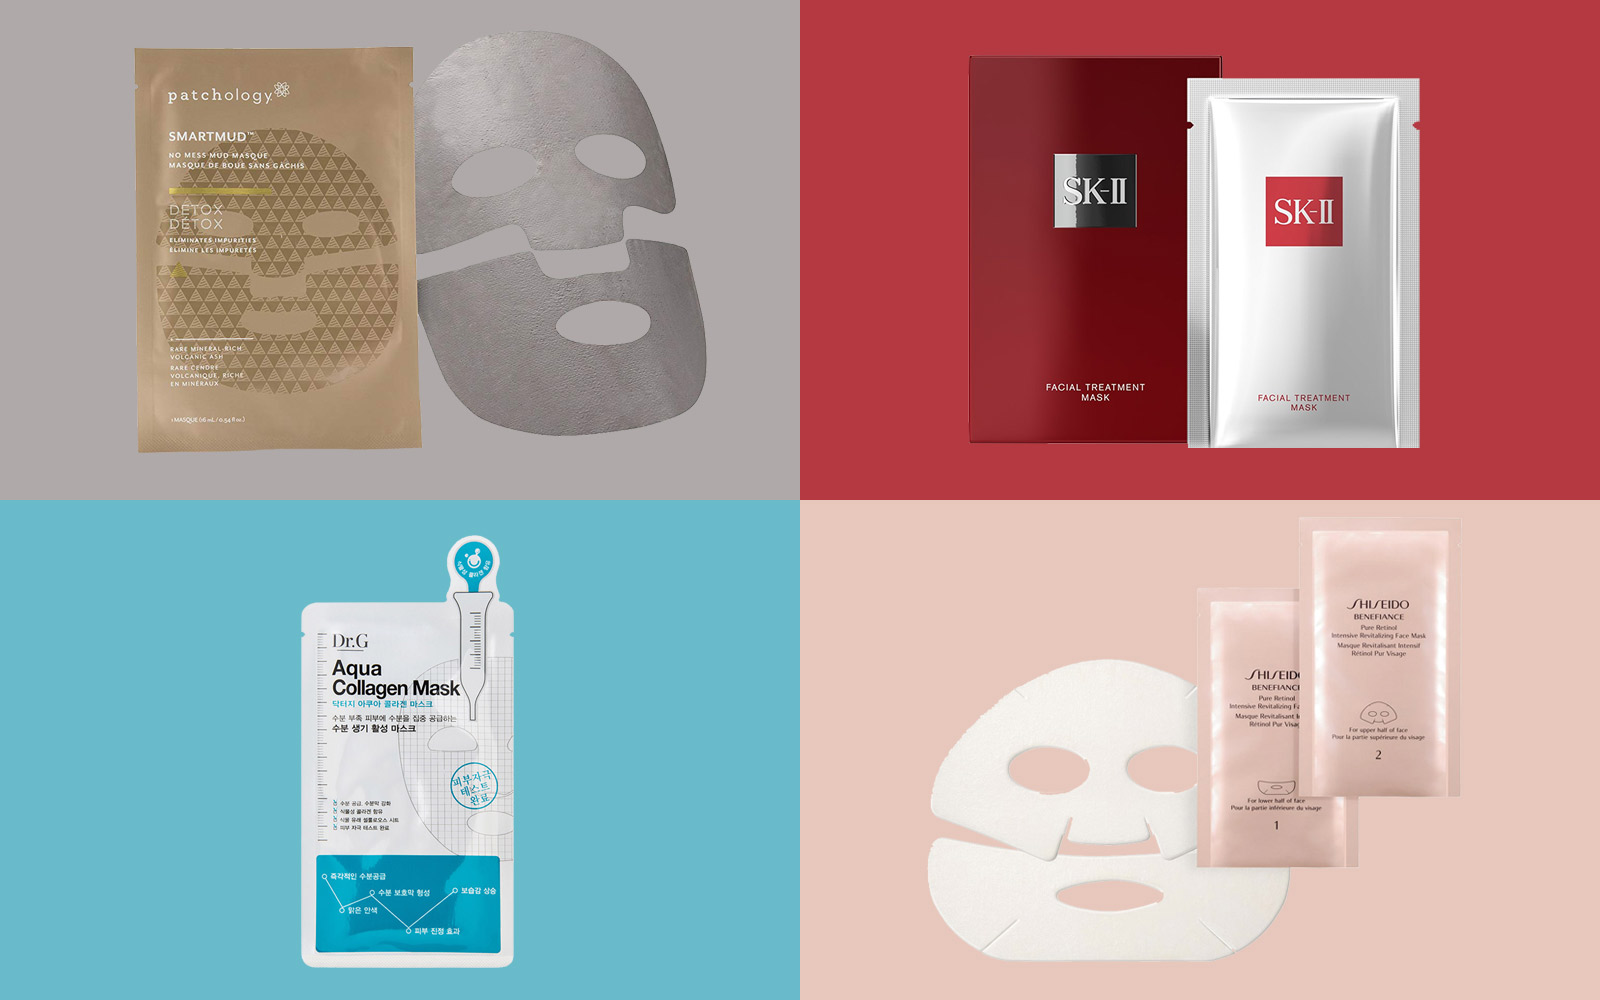 The Best Sheet Masks for Travel